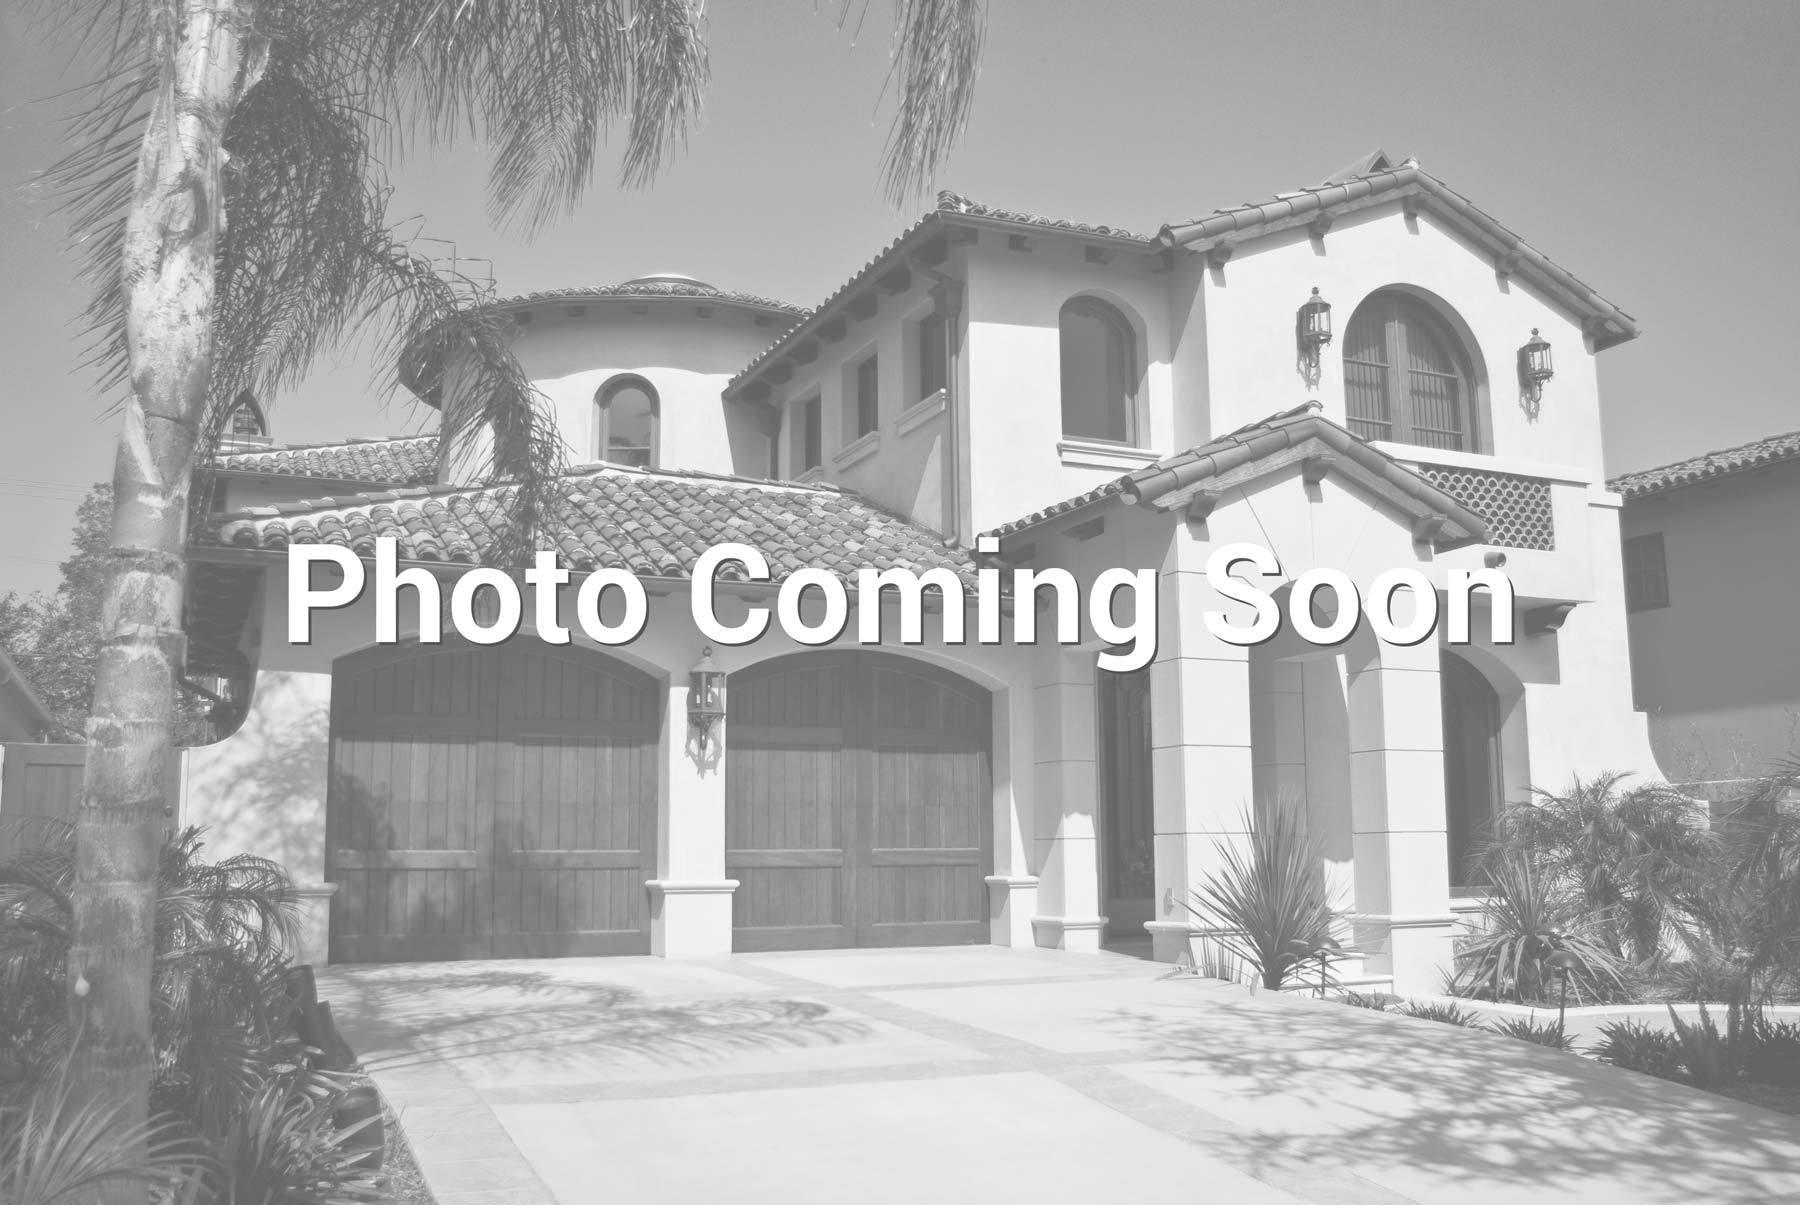 $800,000 - 5Br/4Ba - Home for Sale in Aviano, Phoenix